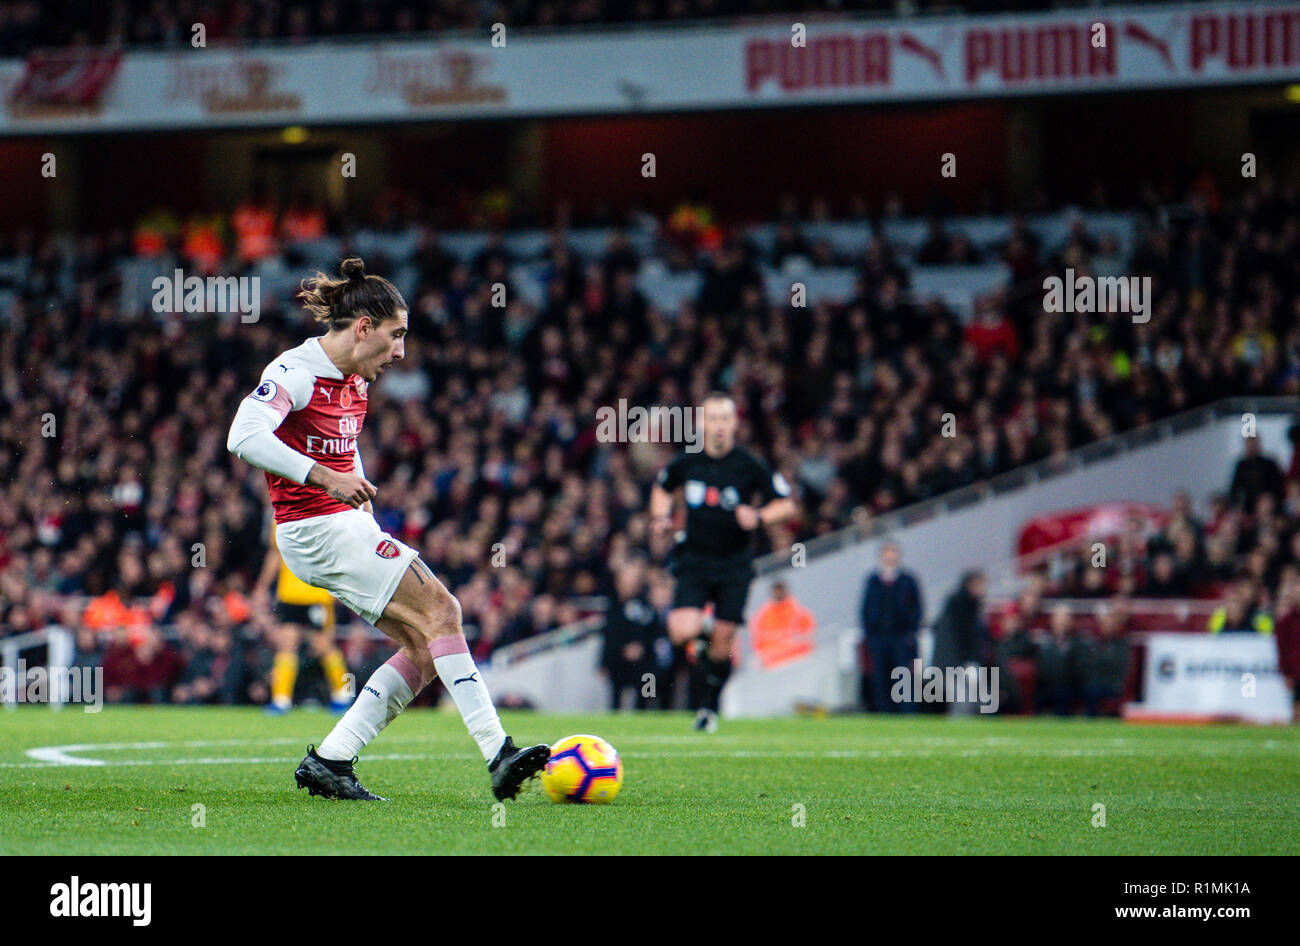 f987862ec Arsenal Fc Stock Photos   Arsenal Fc Stock Images - Page 3 - Alamy